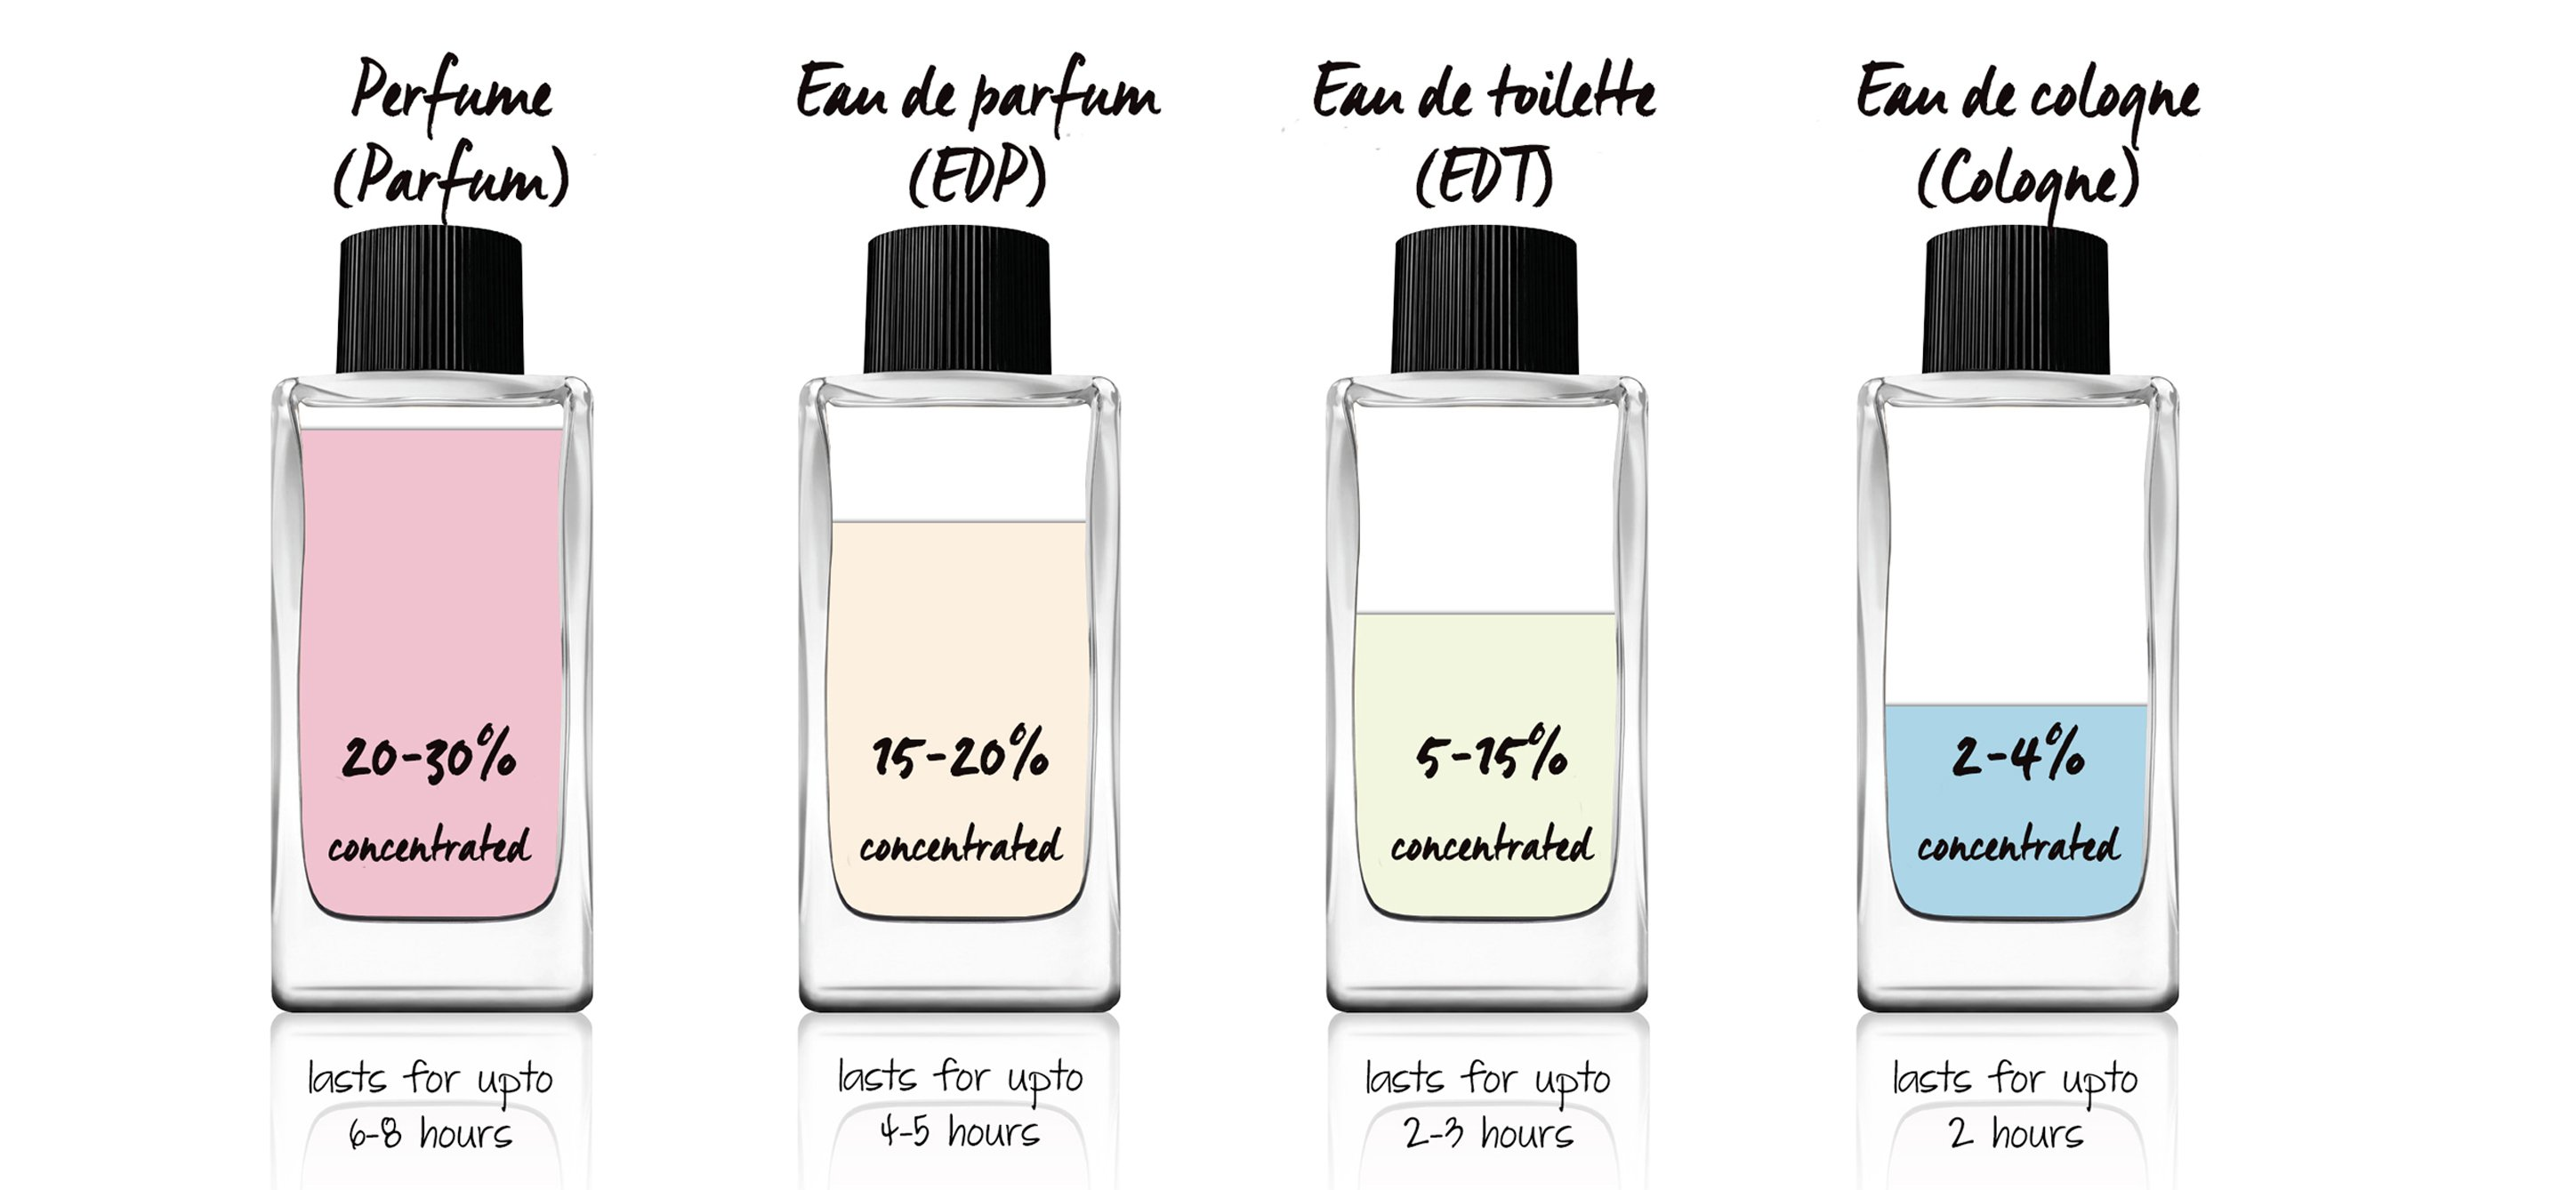 type-of-perfumes-durations.jpg